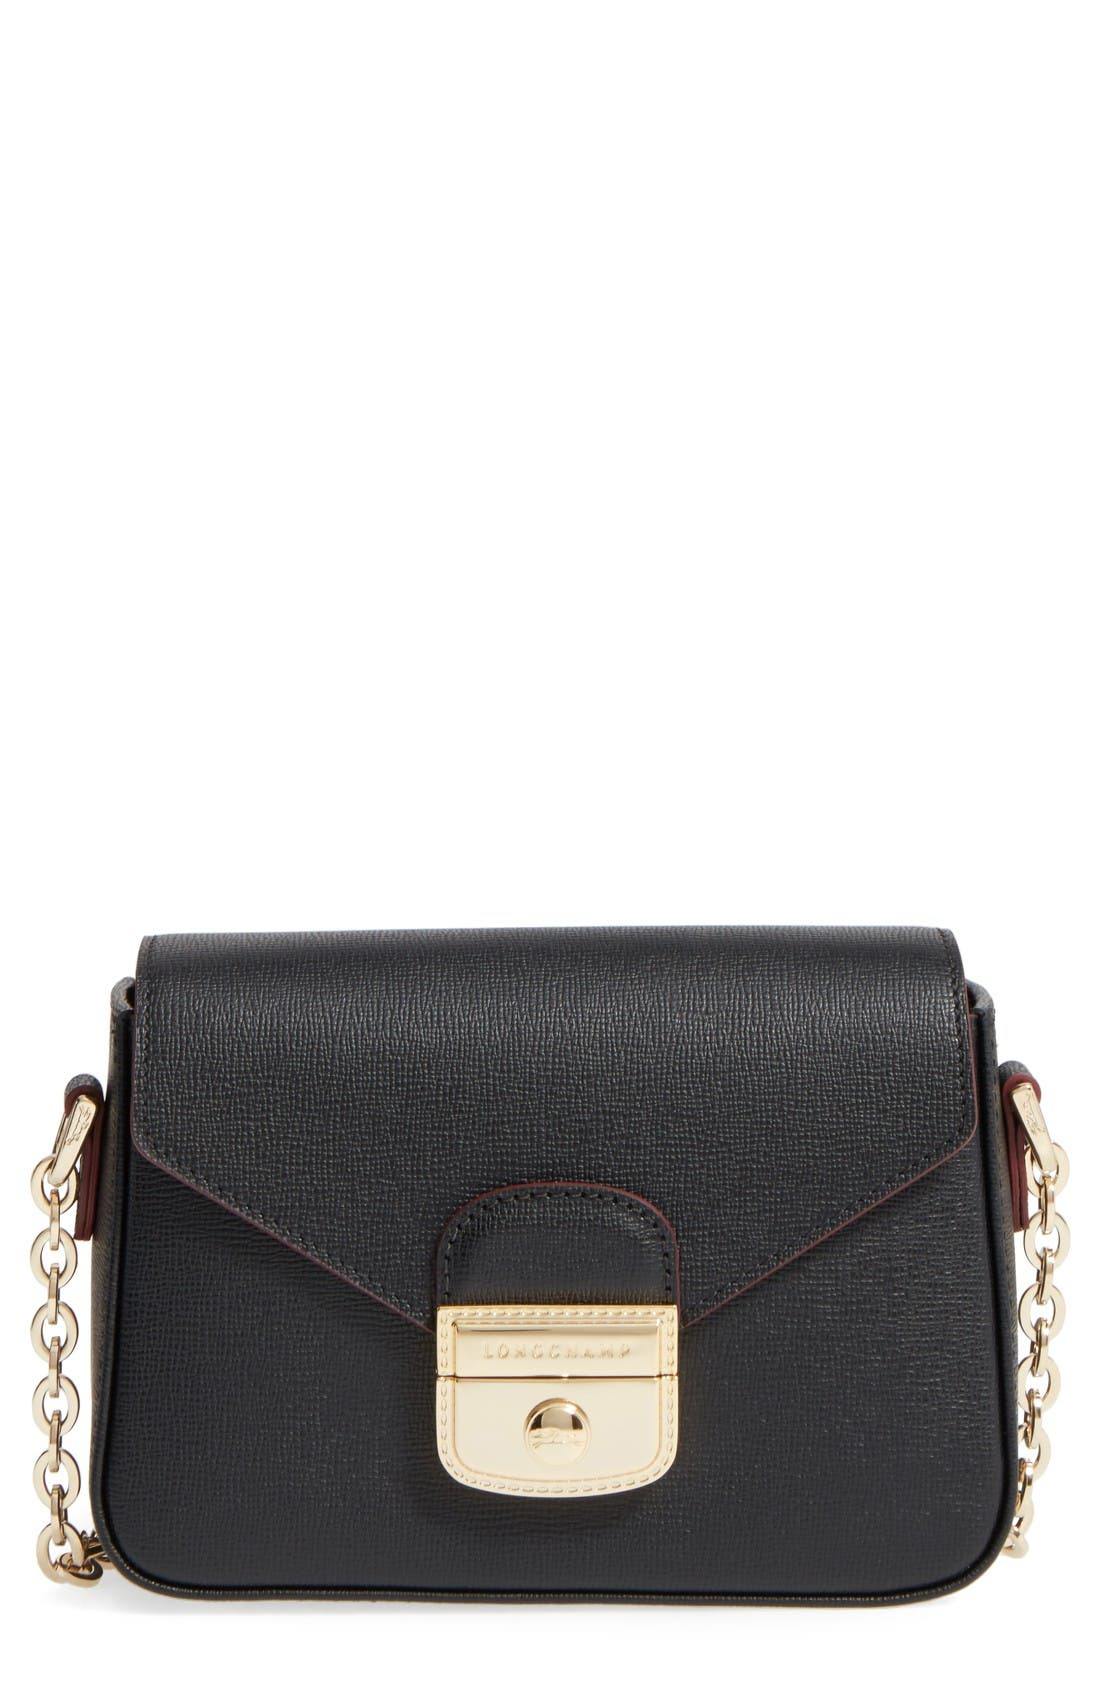 Small Le Pliage Heritage Leather Extra Small Crossbody Bag,                         Main,                         color, Black